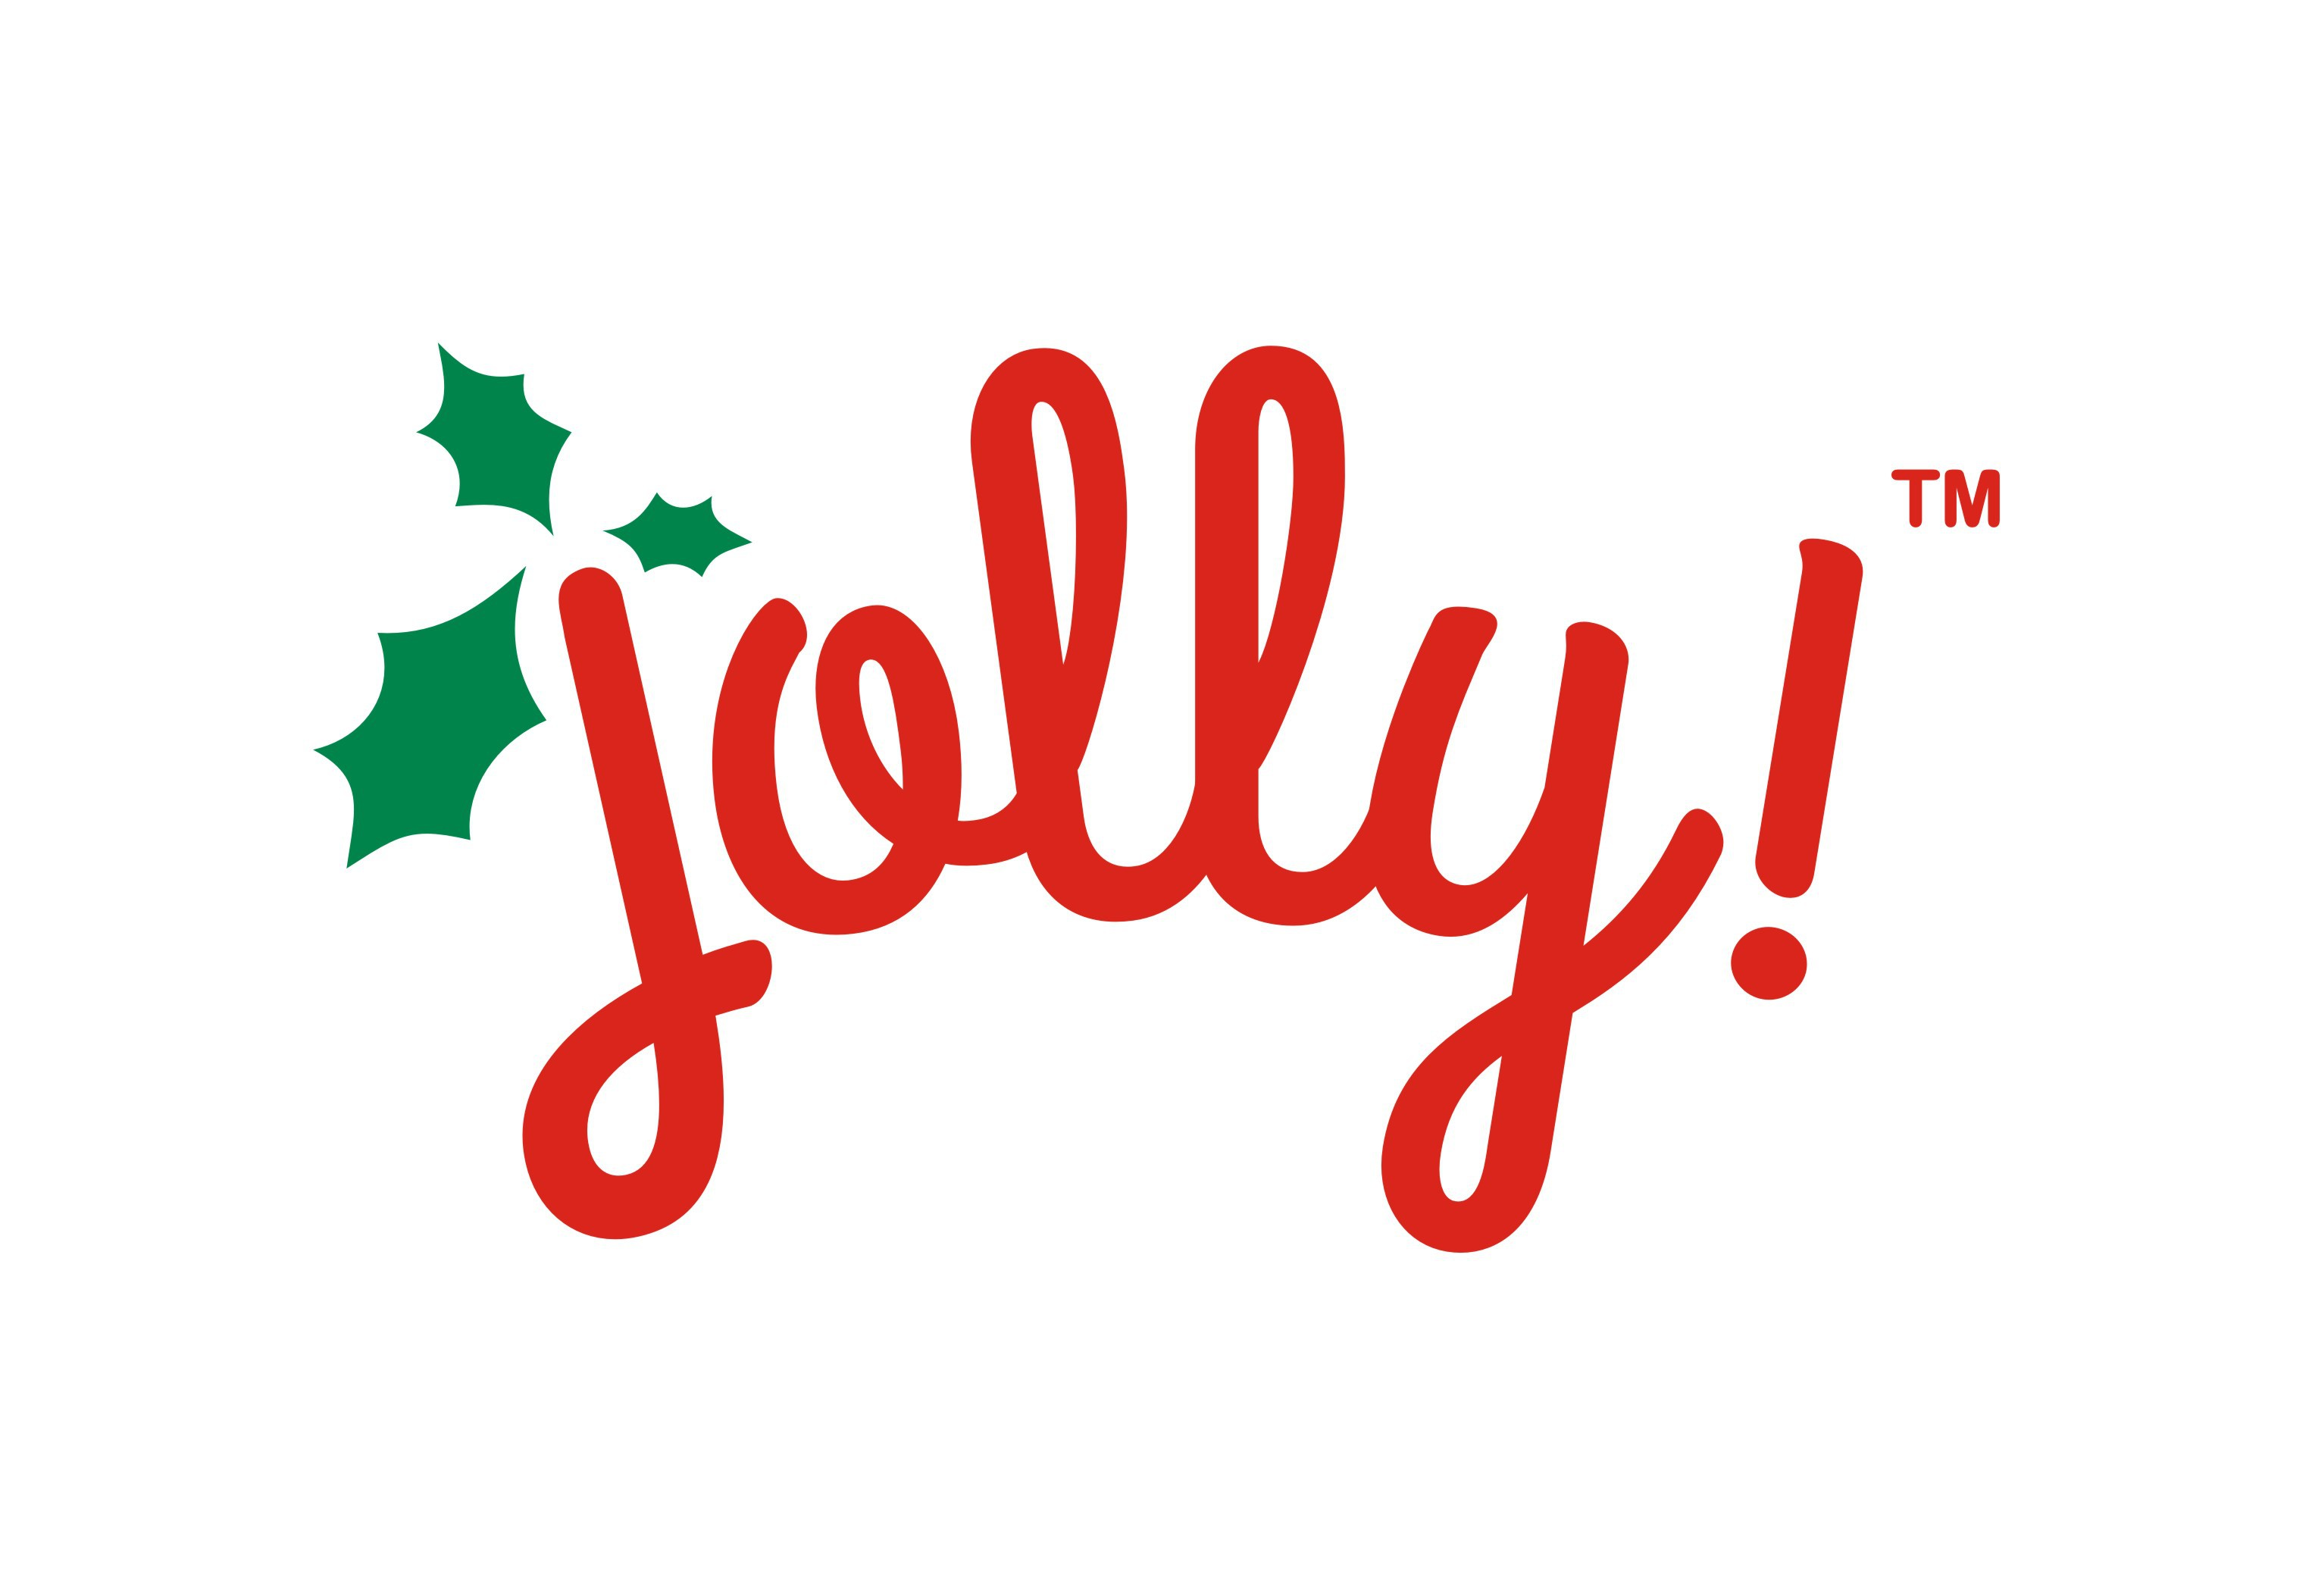 Make our customers smile, with a logo for a new Christmas brand called Jolly!